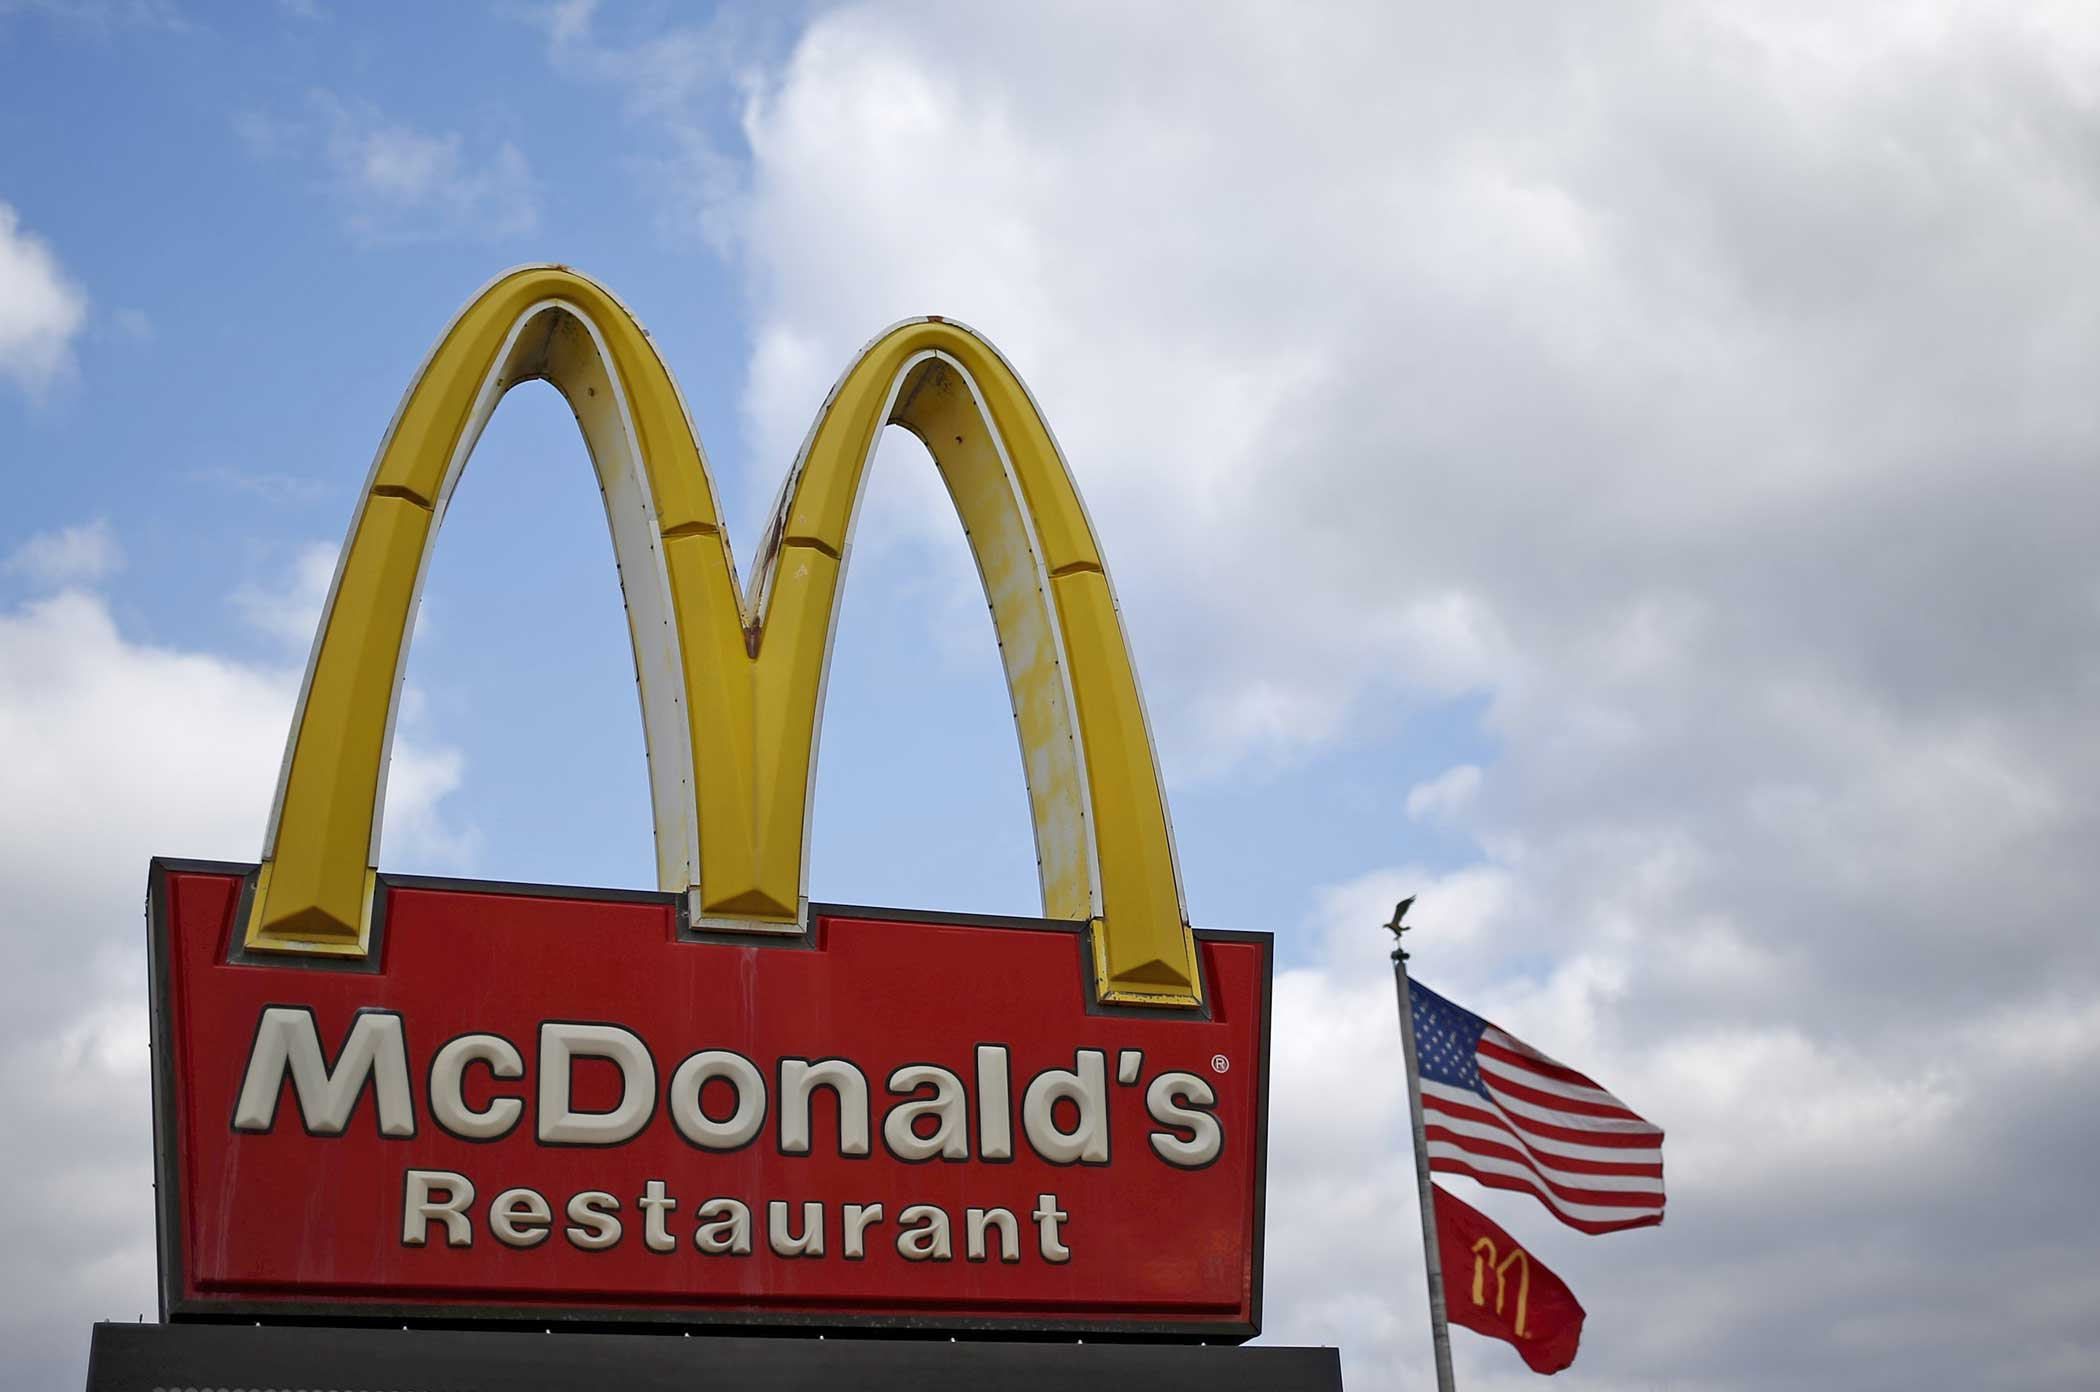 A McDonald's sign is seen outside one of its restaurants in Joliet, Illinois on March 26, 2015.